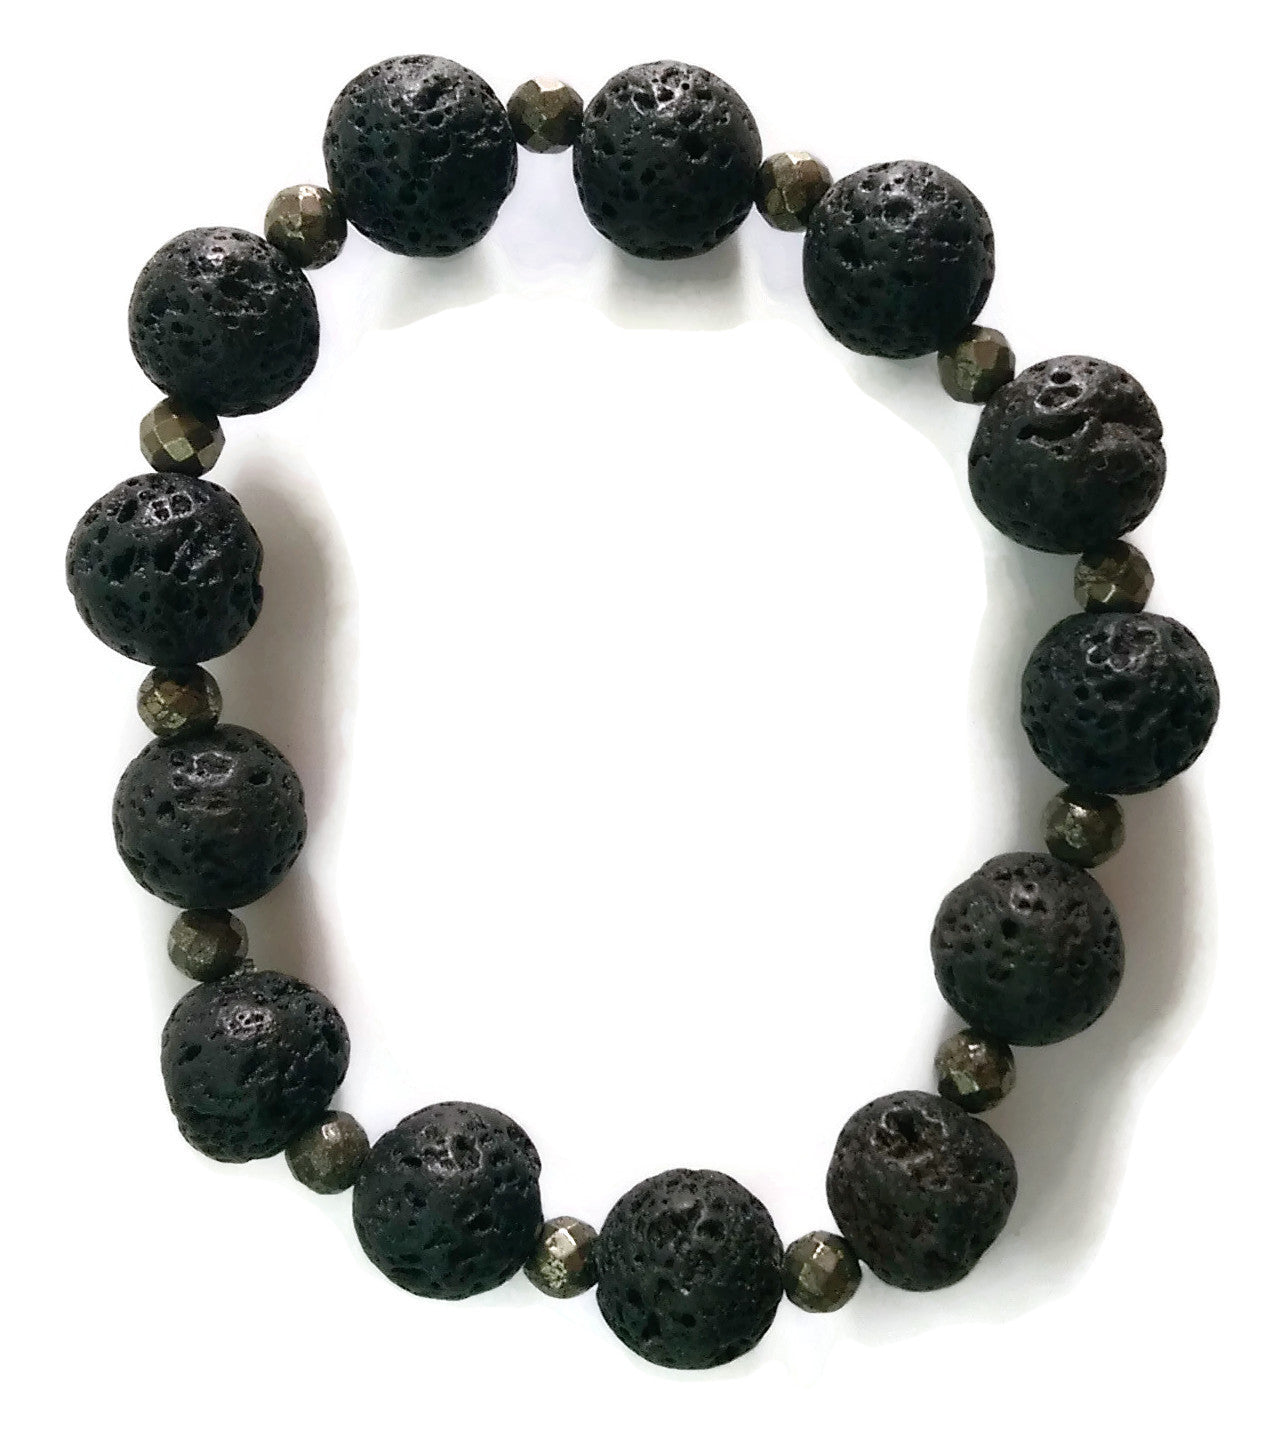 10mm Matte Black Lava and Grey Faceted Pyrite Stone Yoga Wrist Mala Bracelet